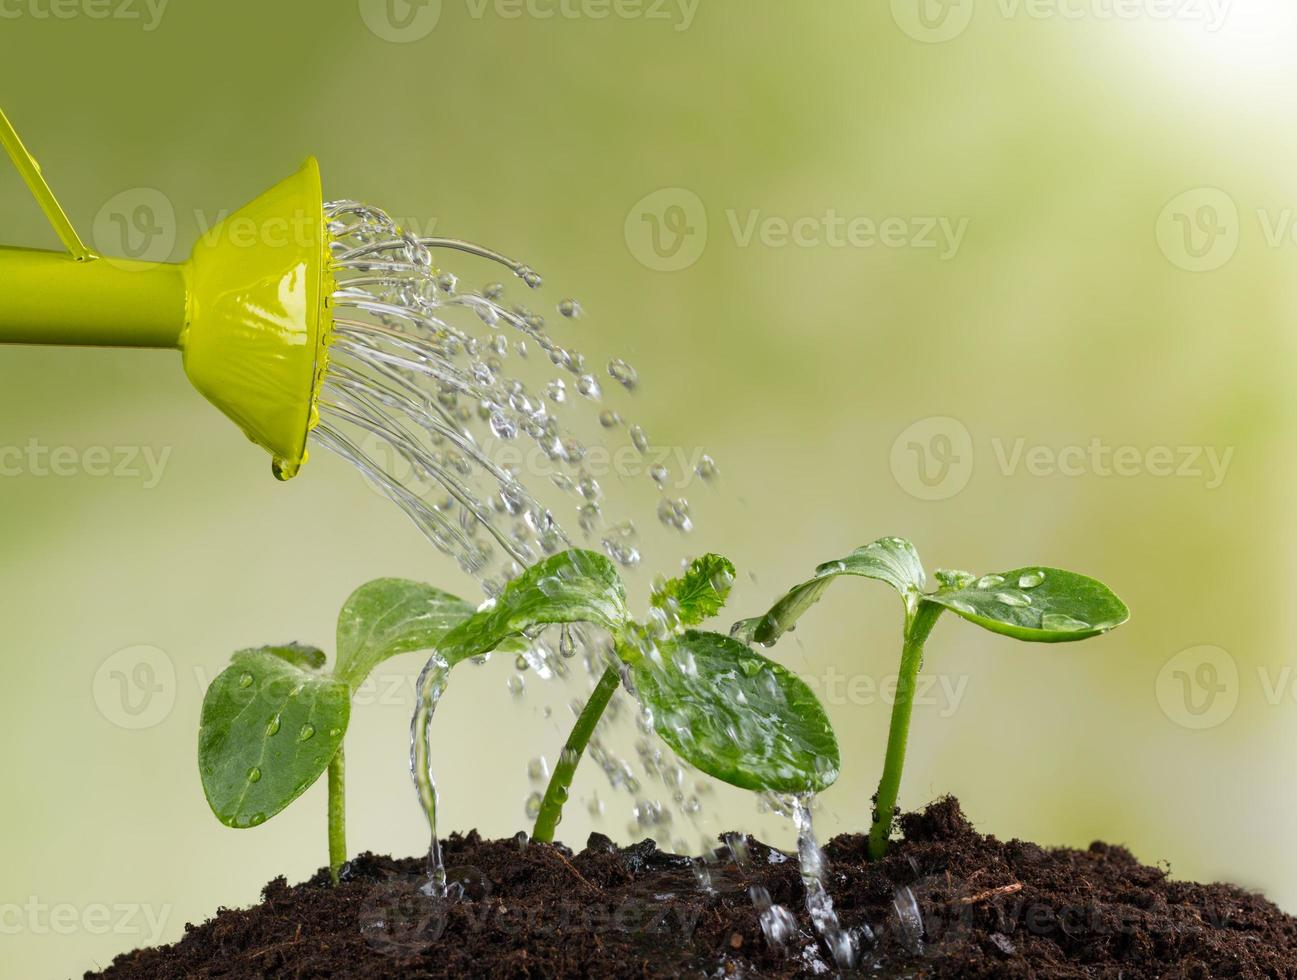 Watering can watering young plants photo